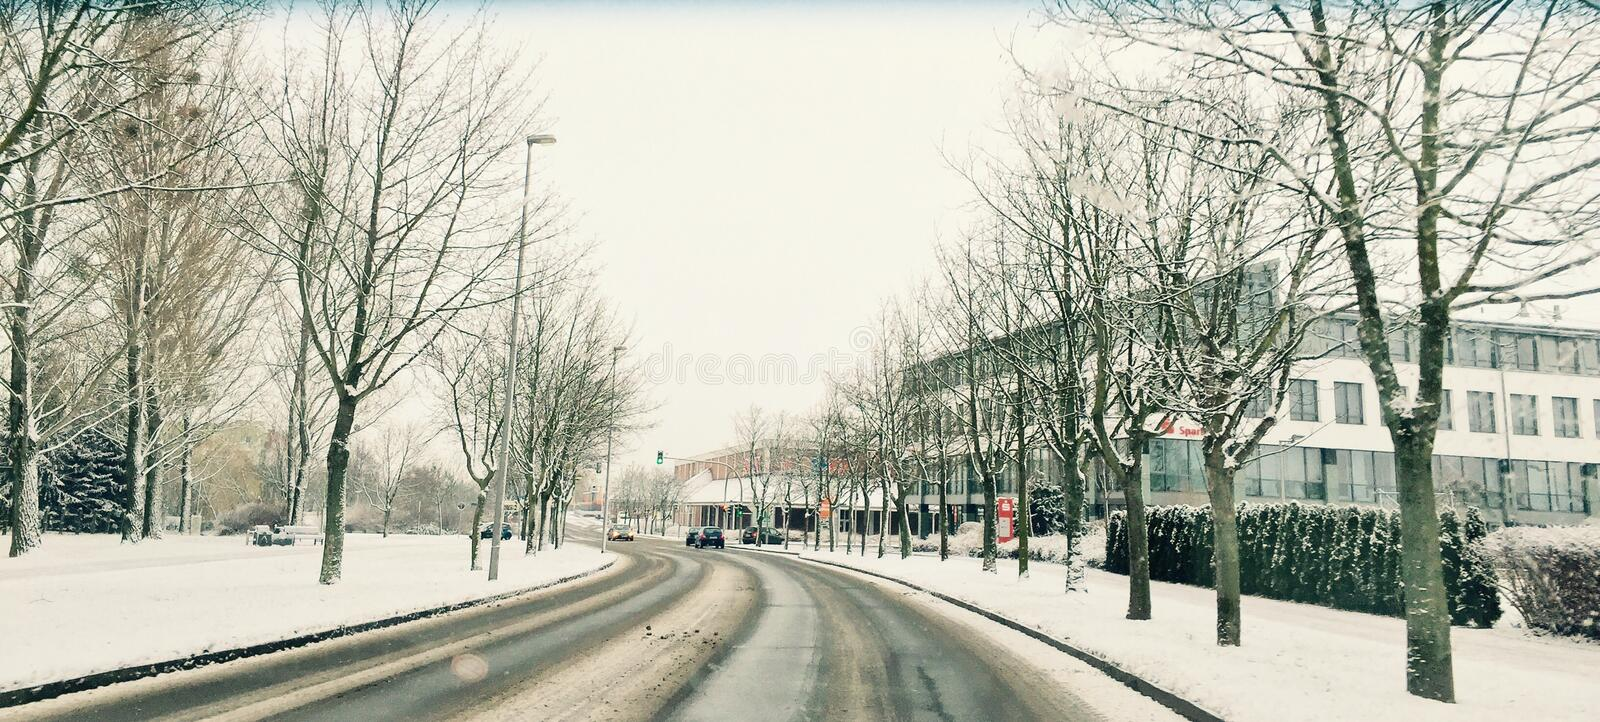 Ma ville photographie stock